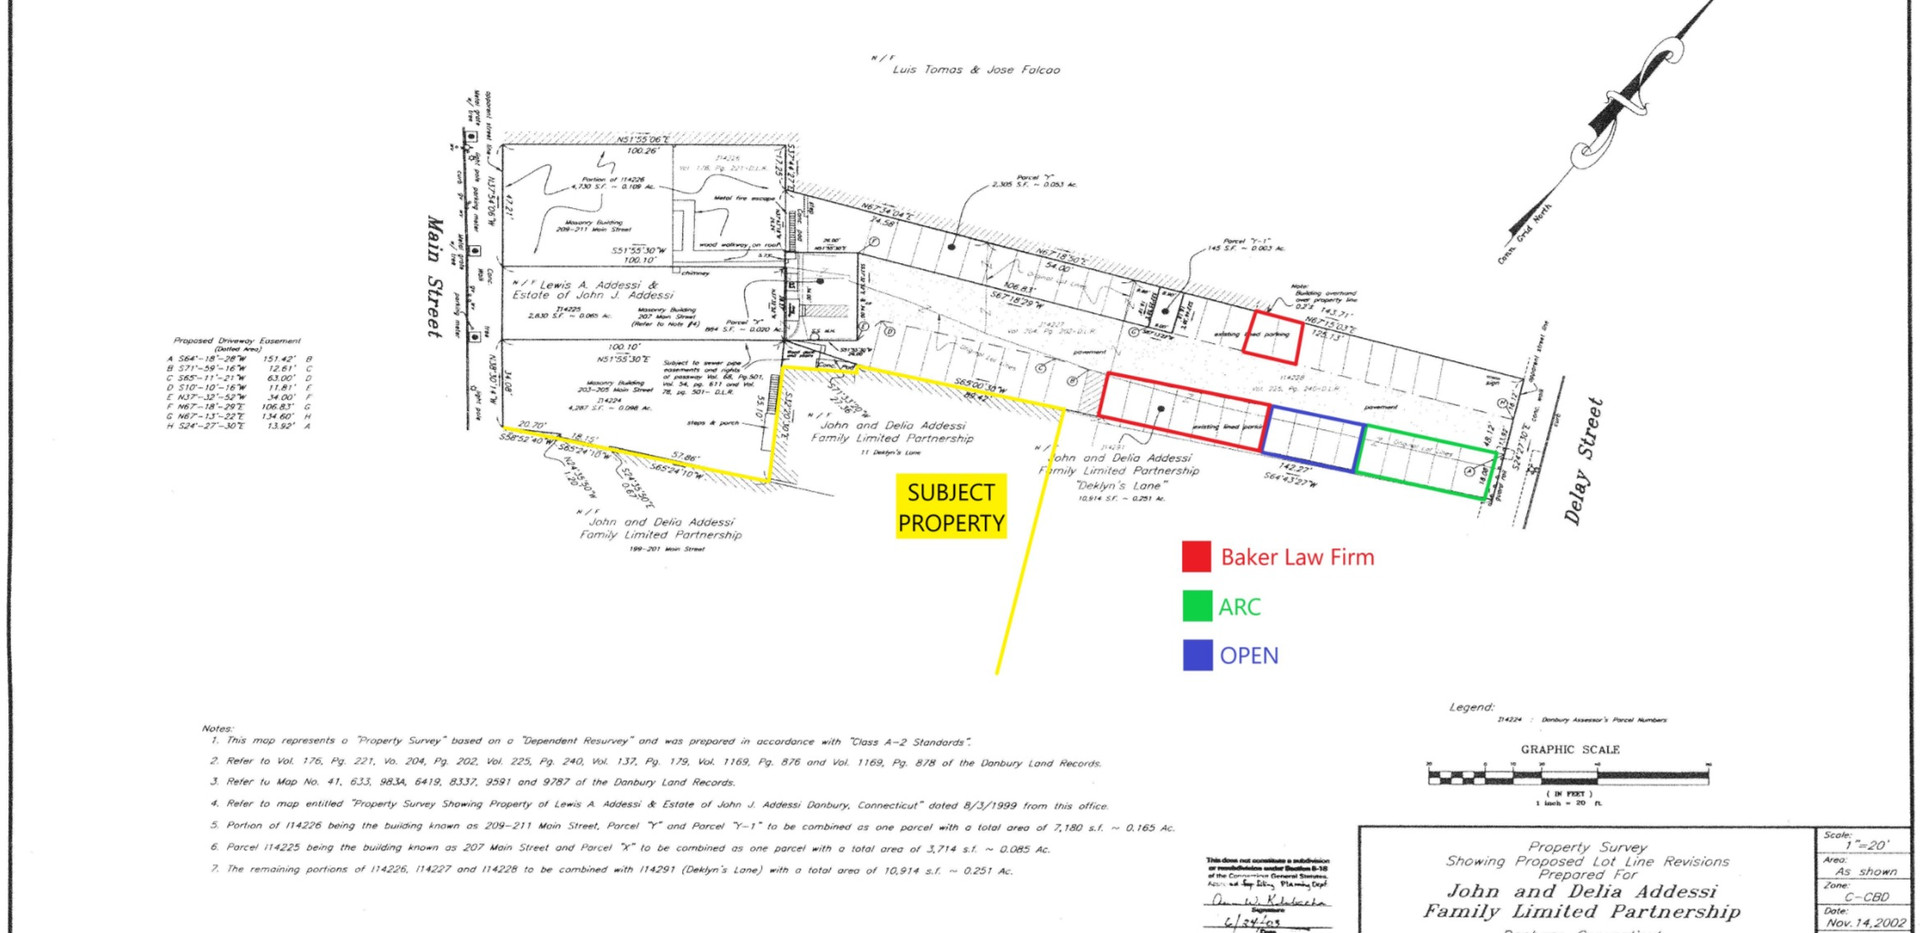 199-201 Main Street Parking Plan